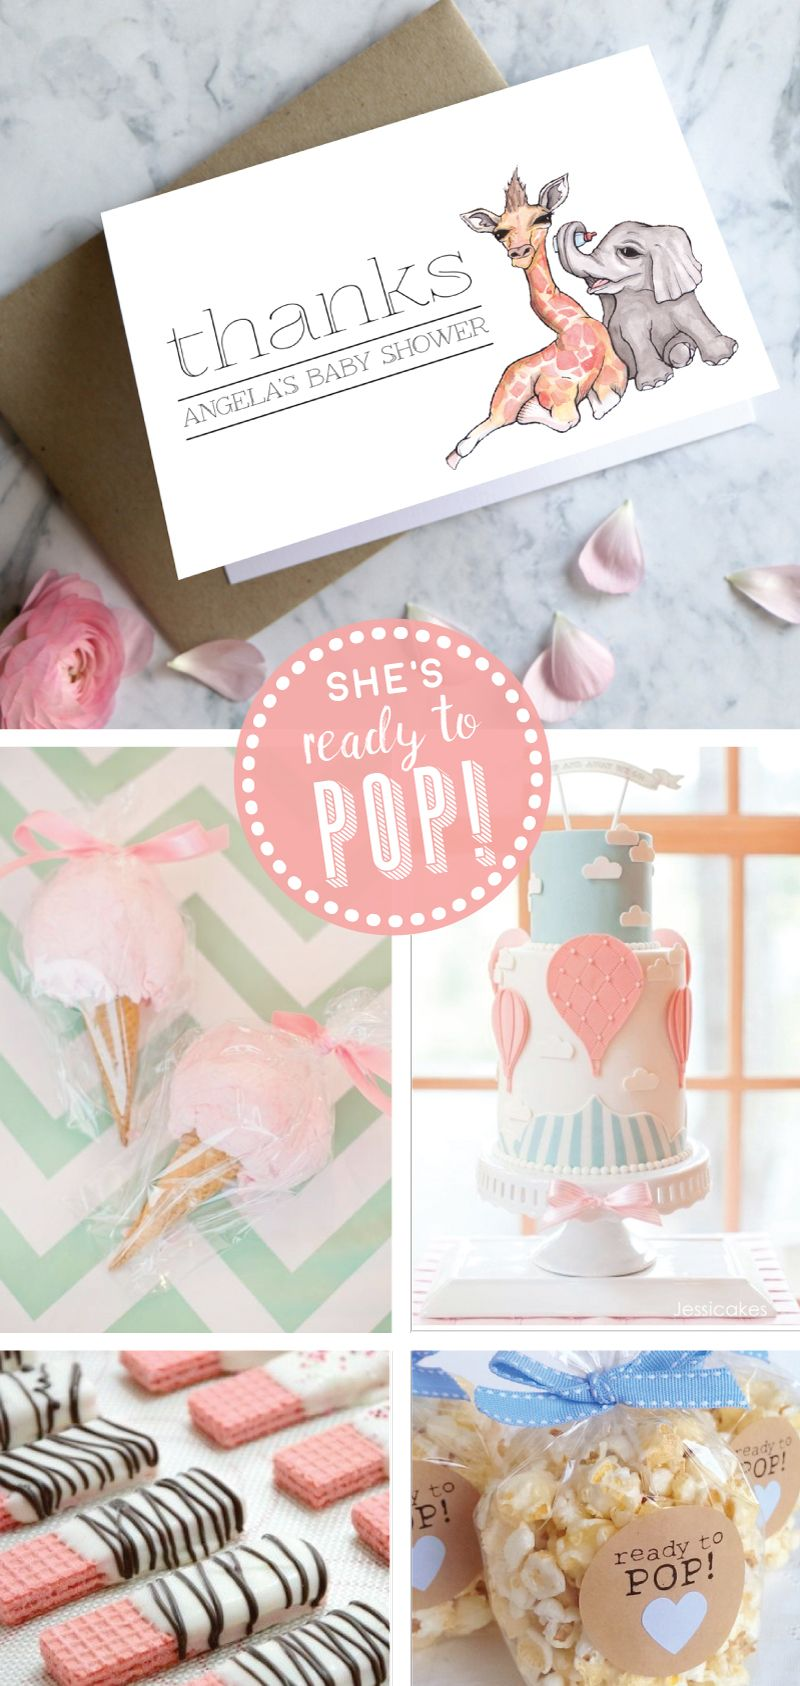 Beautiful designer baby shower invitations and stationery